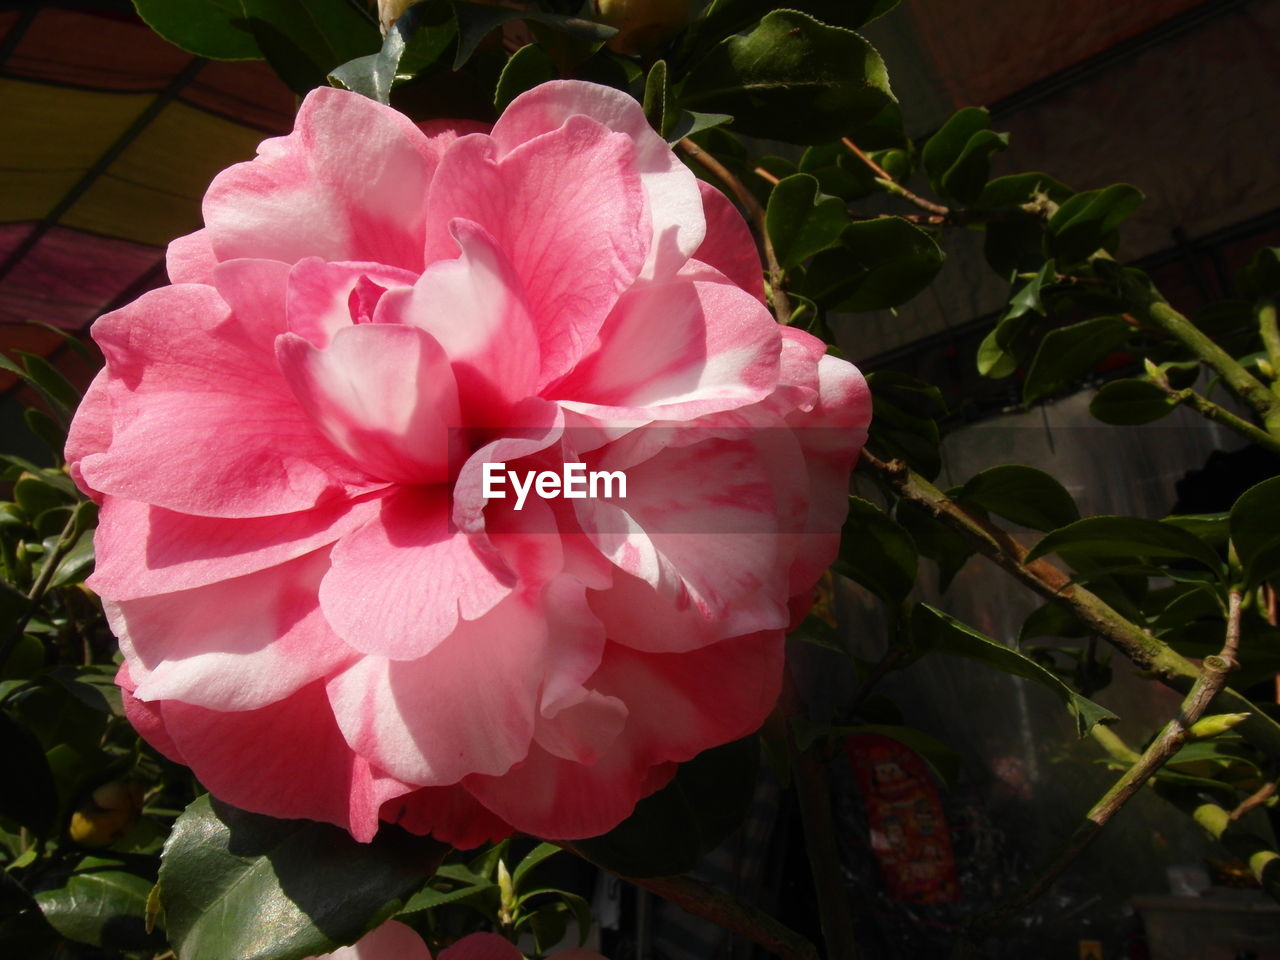 flower, petal, pink color, nature, beauty in nature, plant, no people, flower head, growth, outdoors, fragility, day, close-up, rose - flower, blooming, freshness